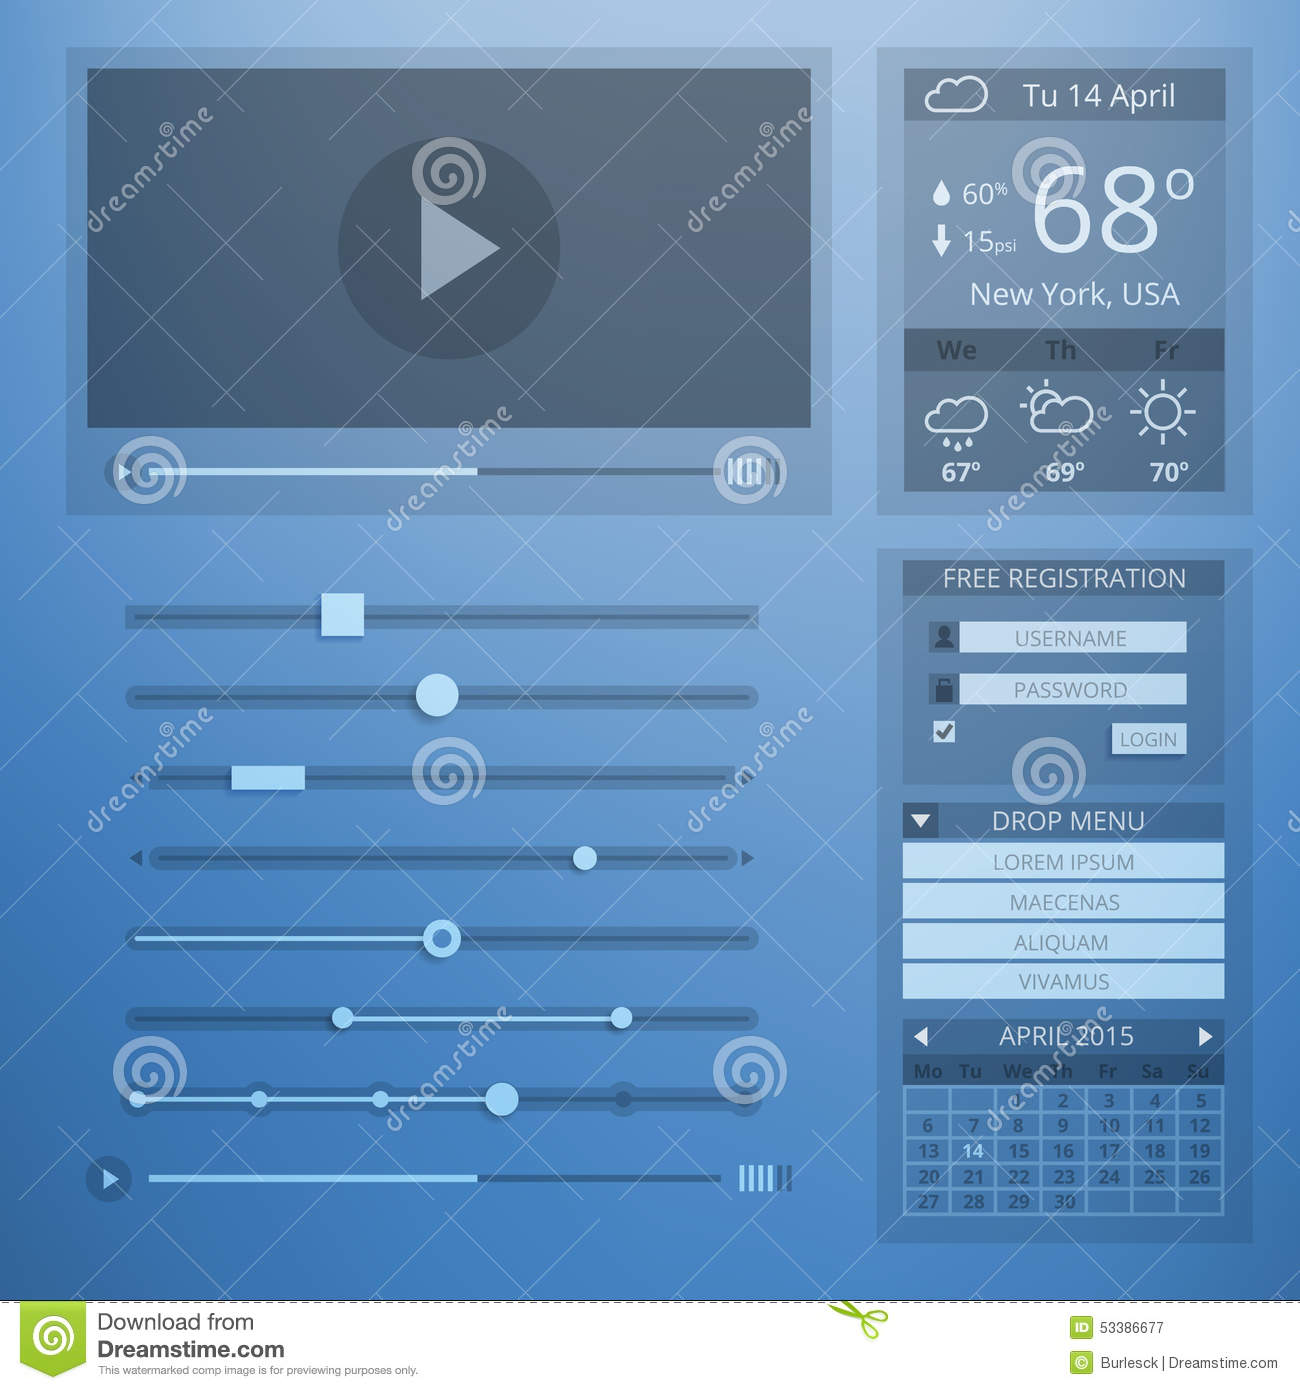 UI Transparency Flat Design Of Web Elements Stock Vector